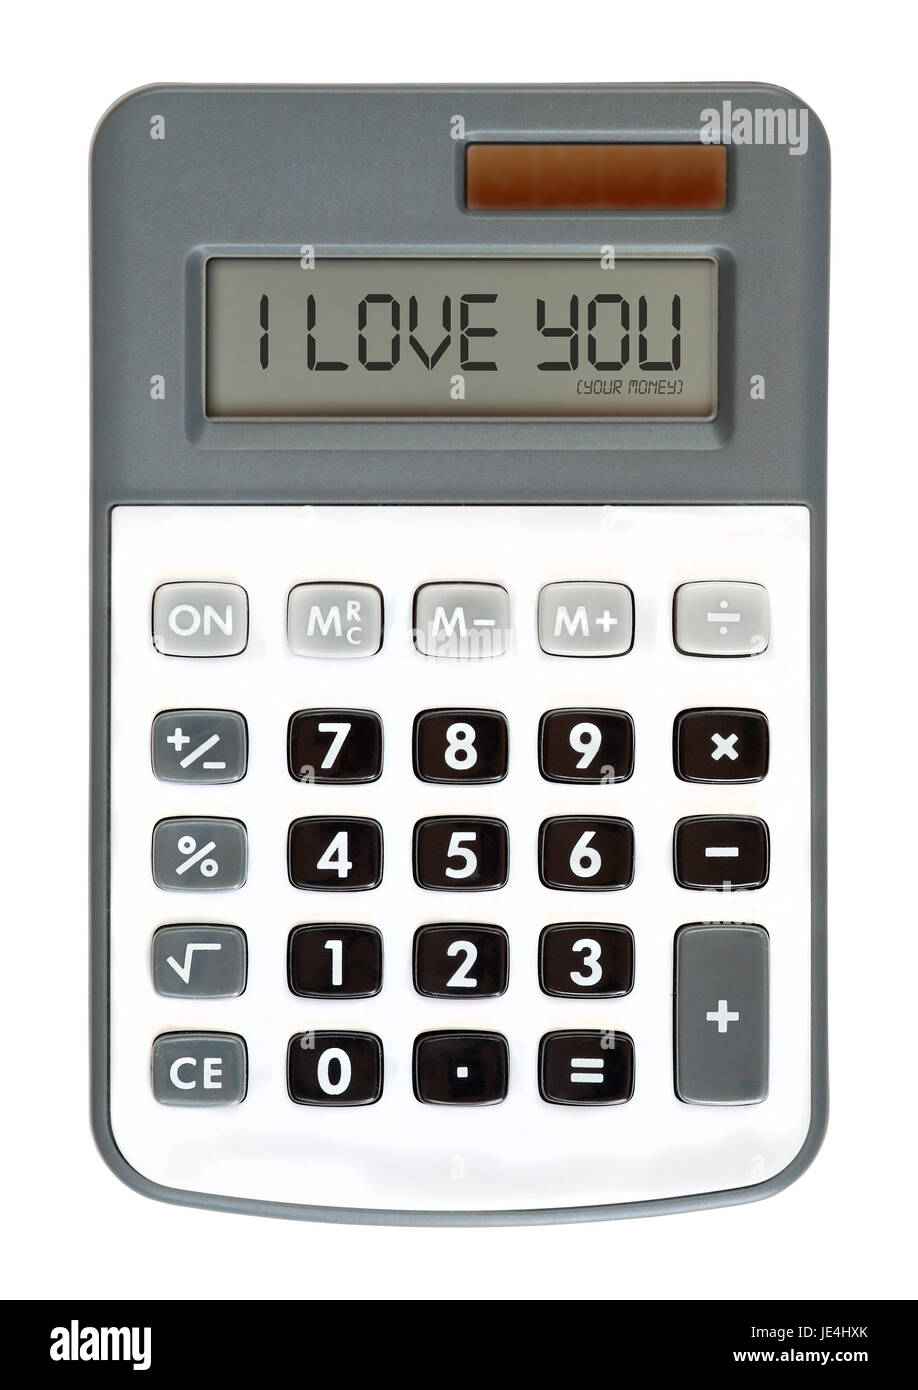 message on the display - money talks - I Love You - Stock Image